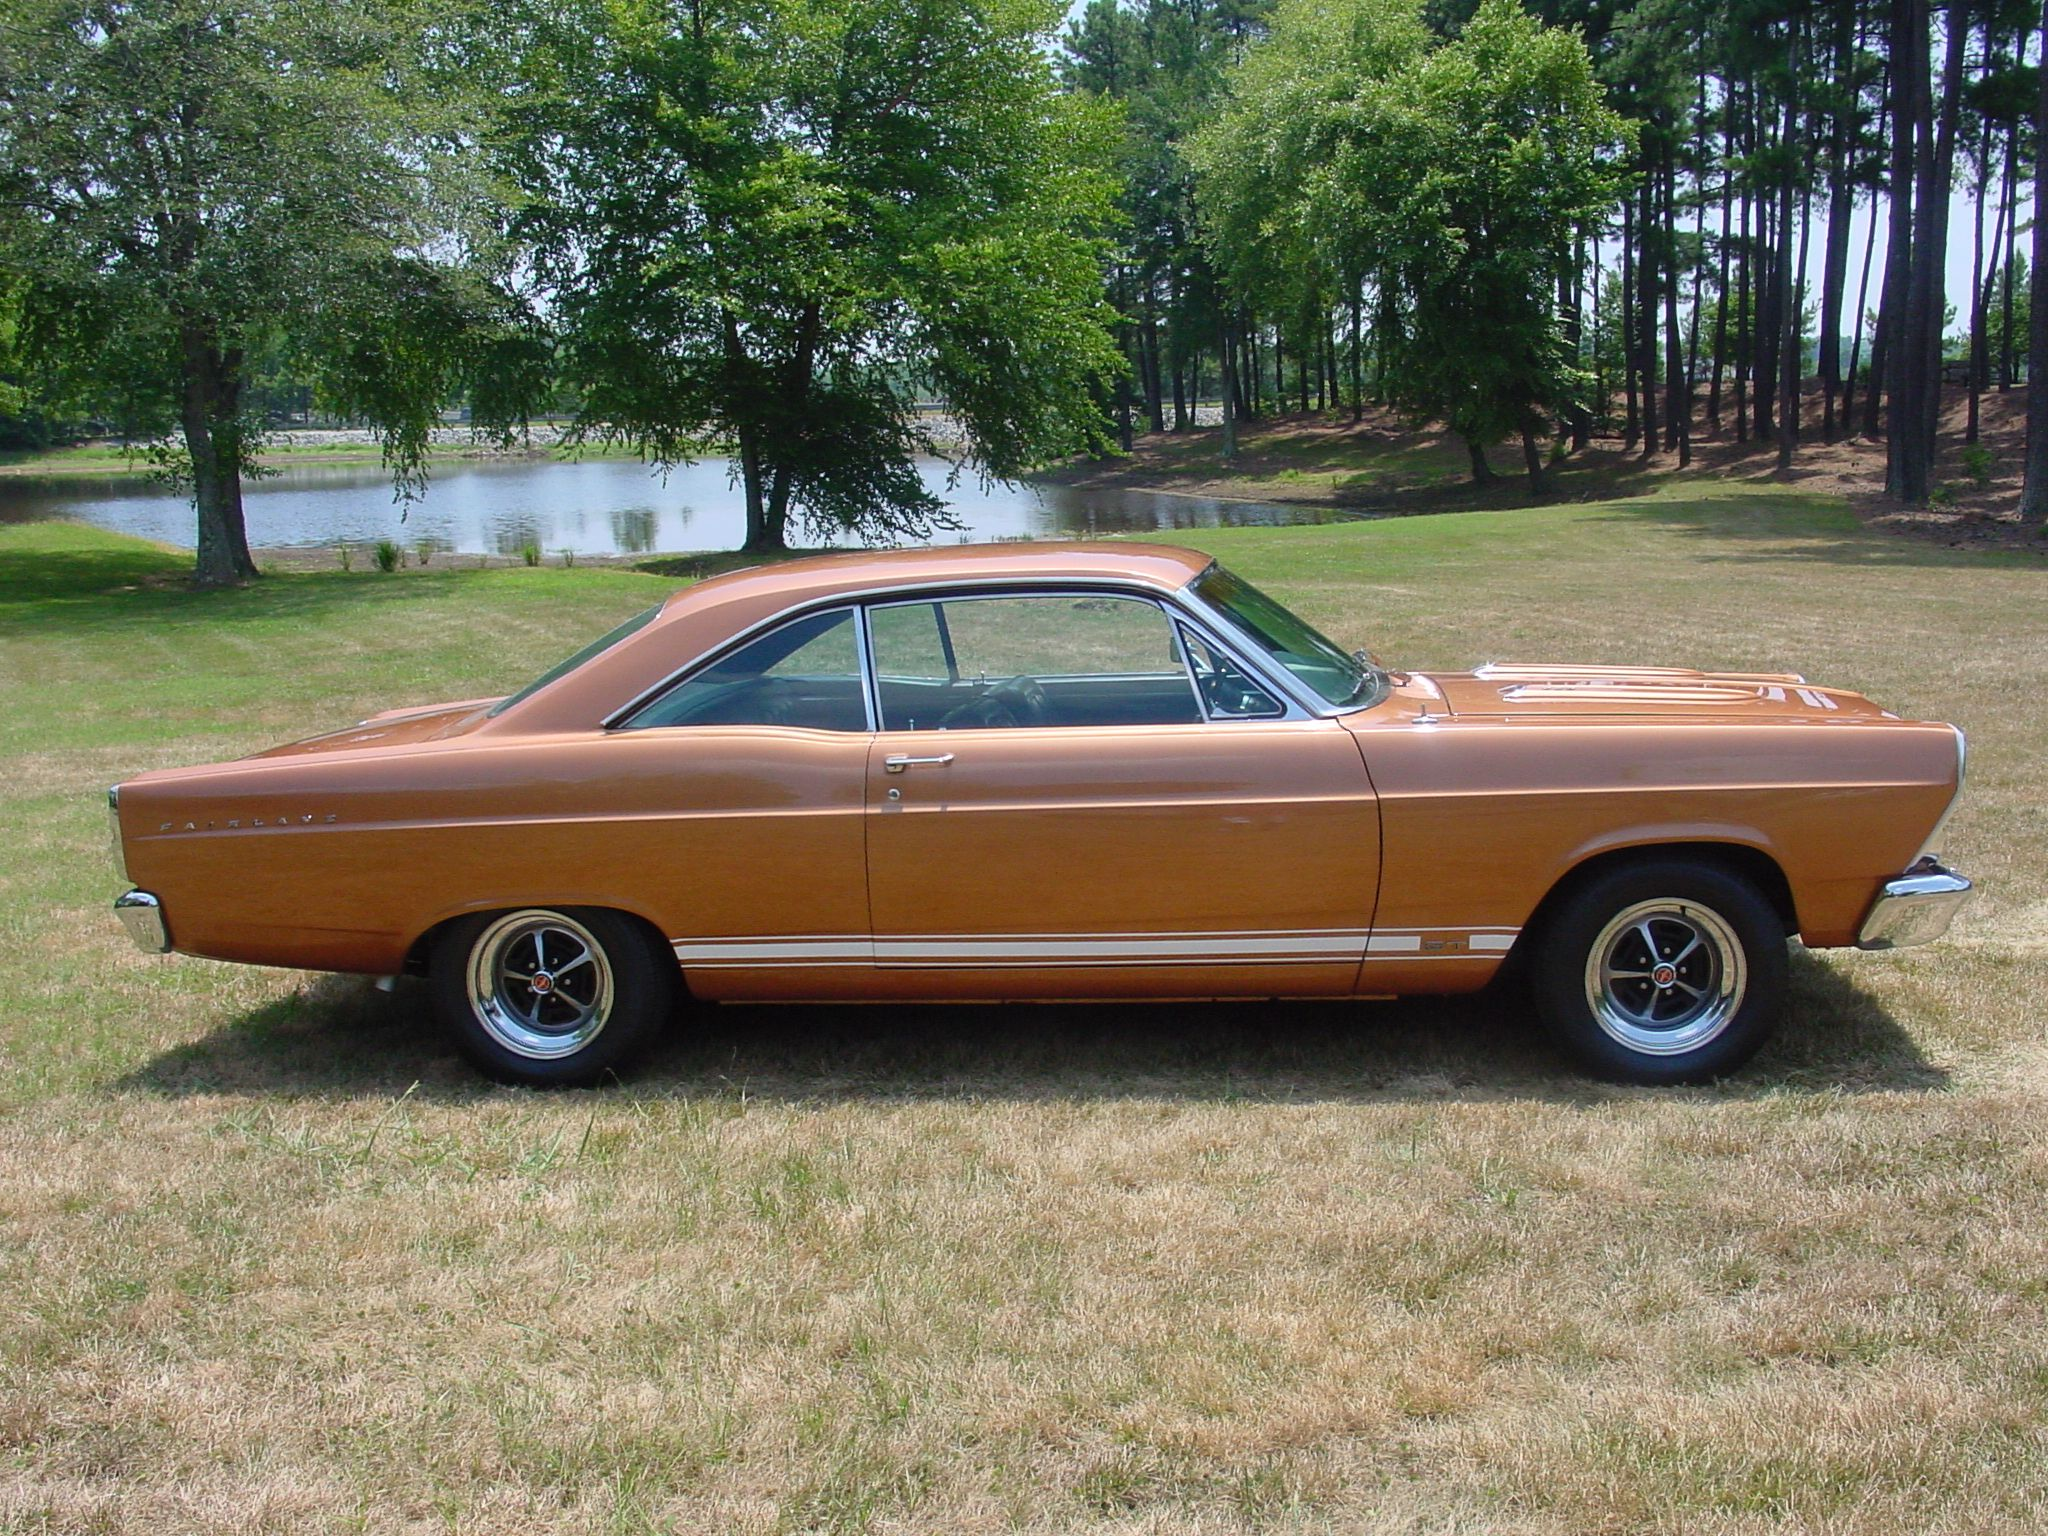 1972 mercury montego n code 429 restomod motorcycle custom - 1967 Ford Fairlane Gt Two Door Hardtop